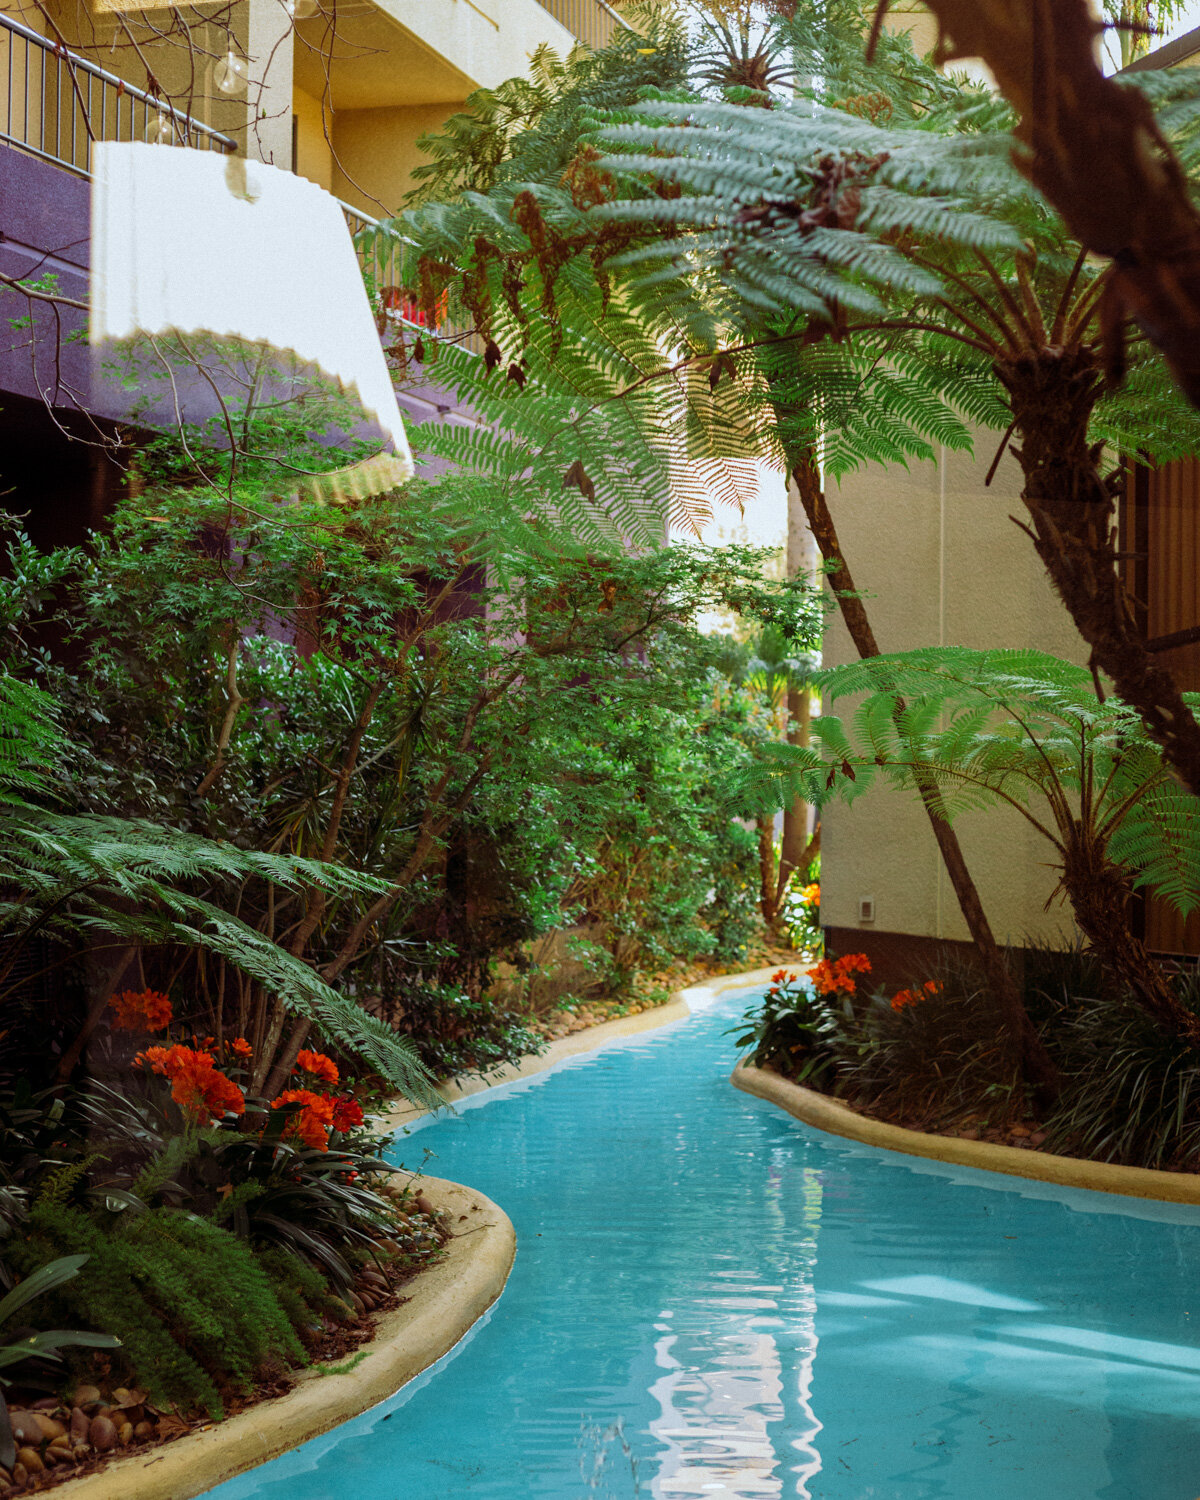 Rachel Off Duty: A Manmade River Flowing Past a Hotel Lobby